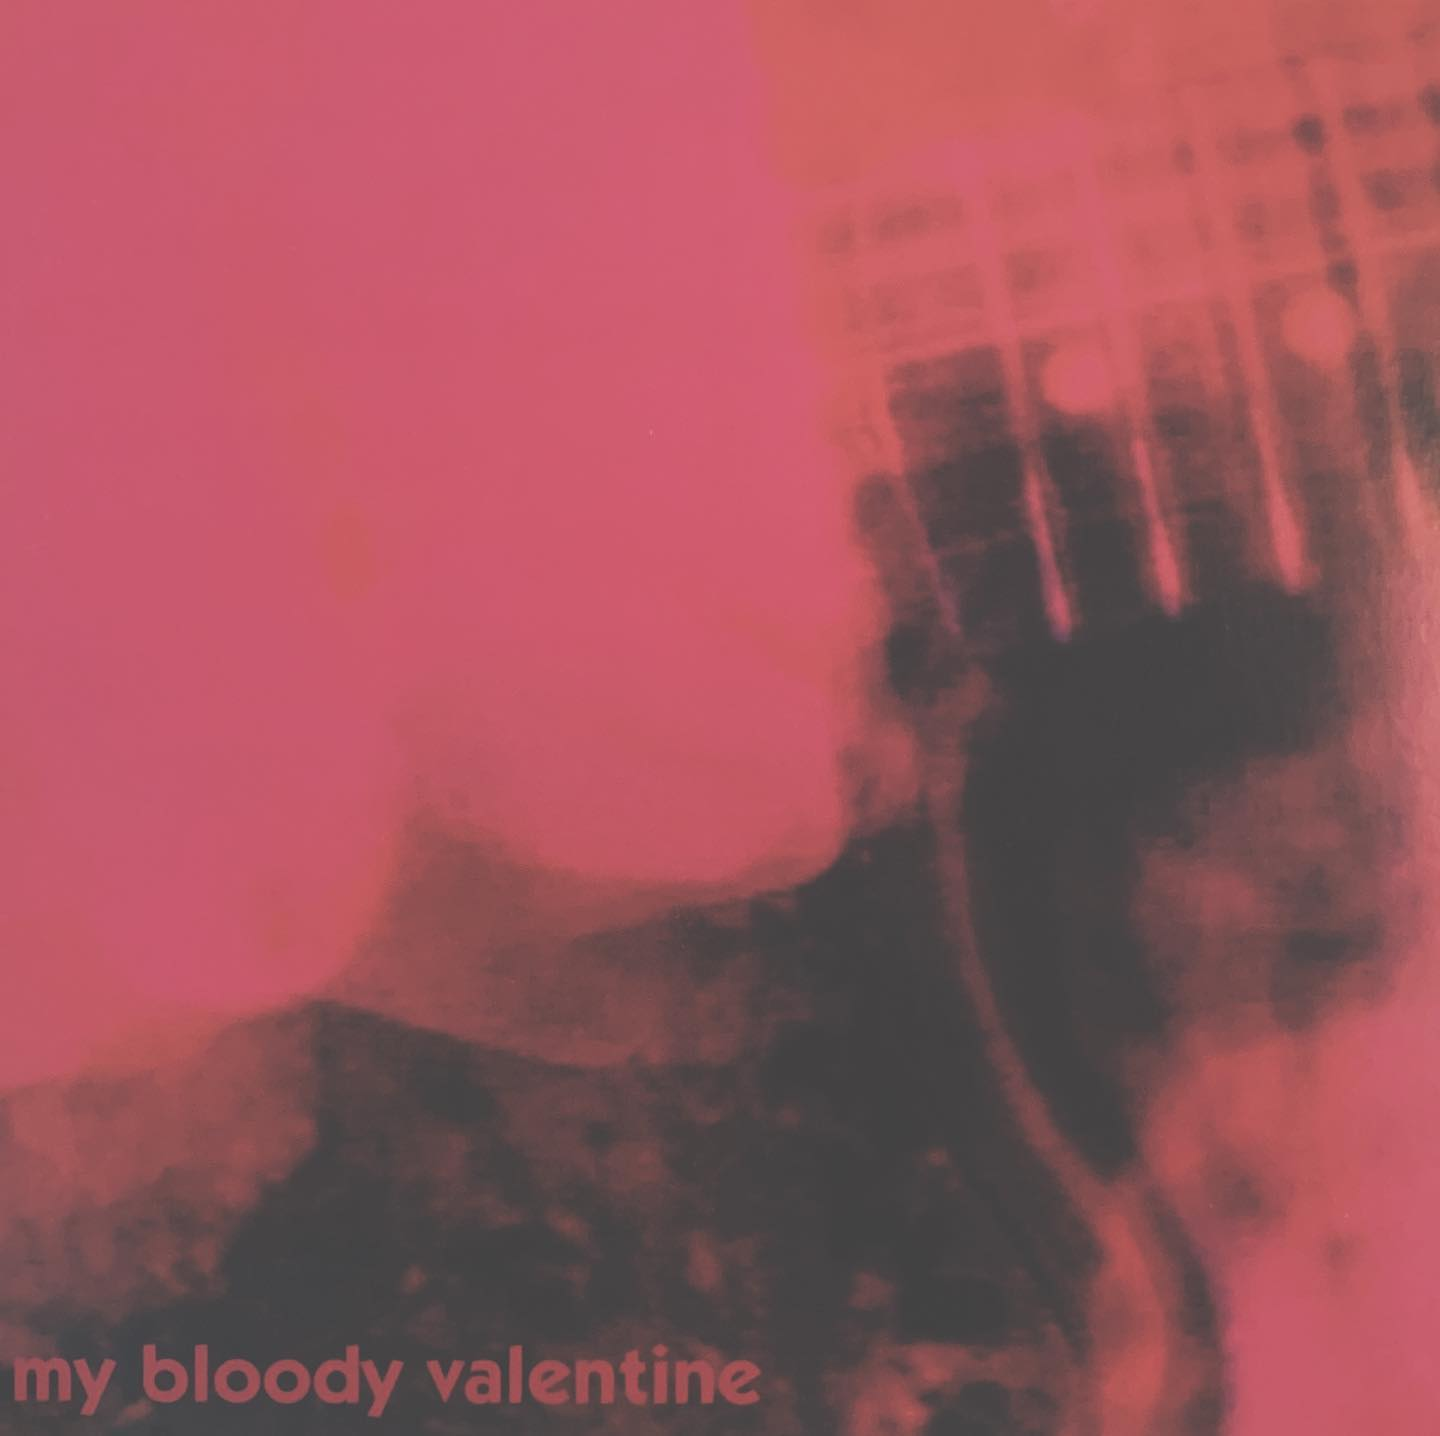 "#ondeck My Bloody Valentine - ""Loveless"" - just The Godfathers of shoegaze classic record. Nbd"